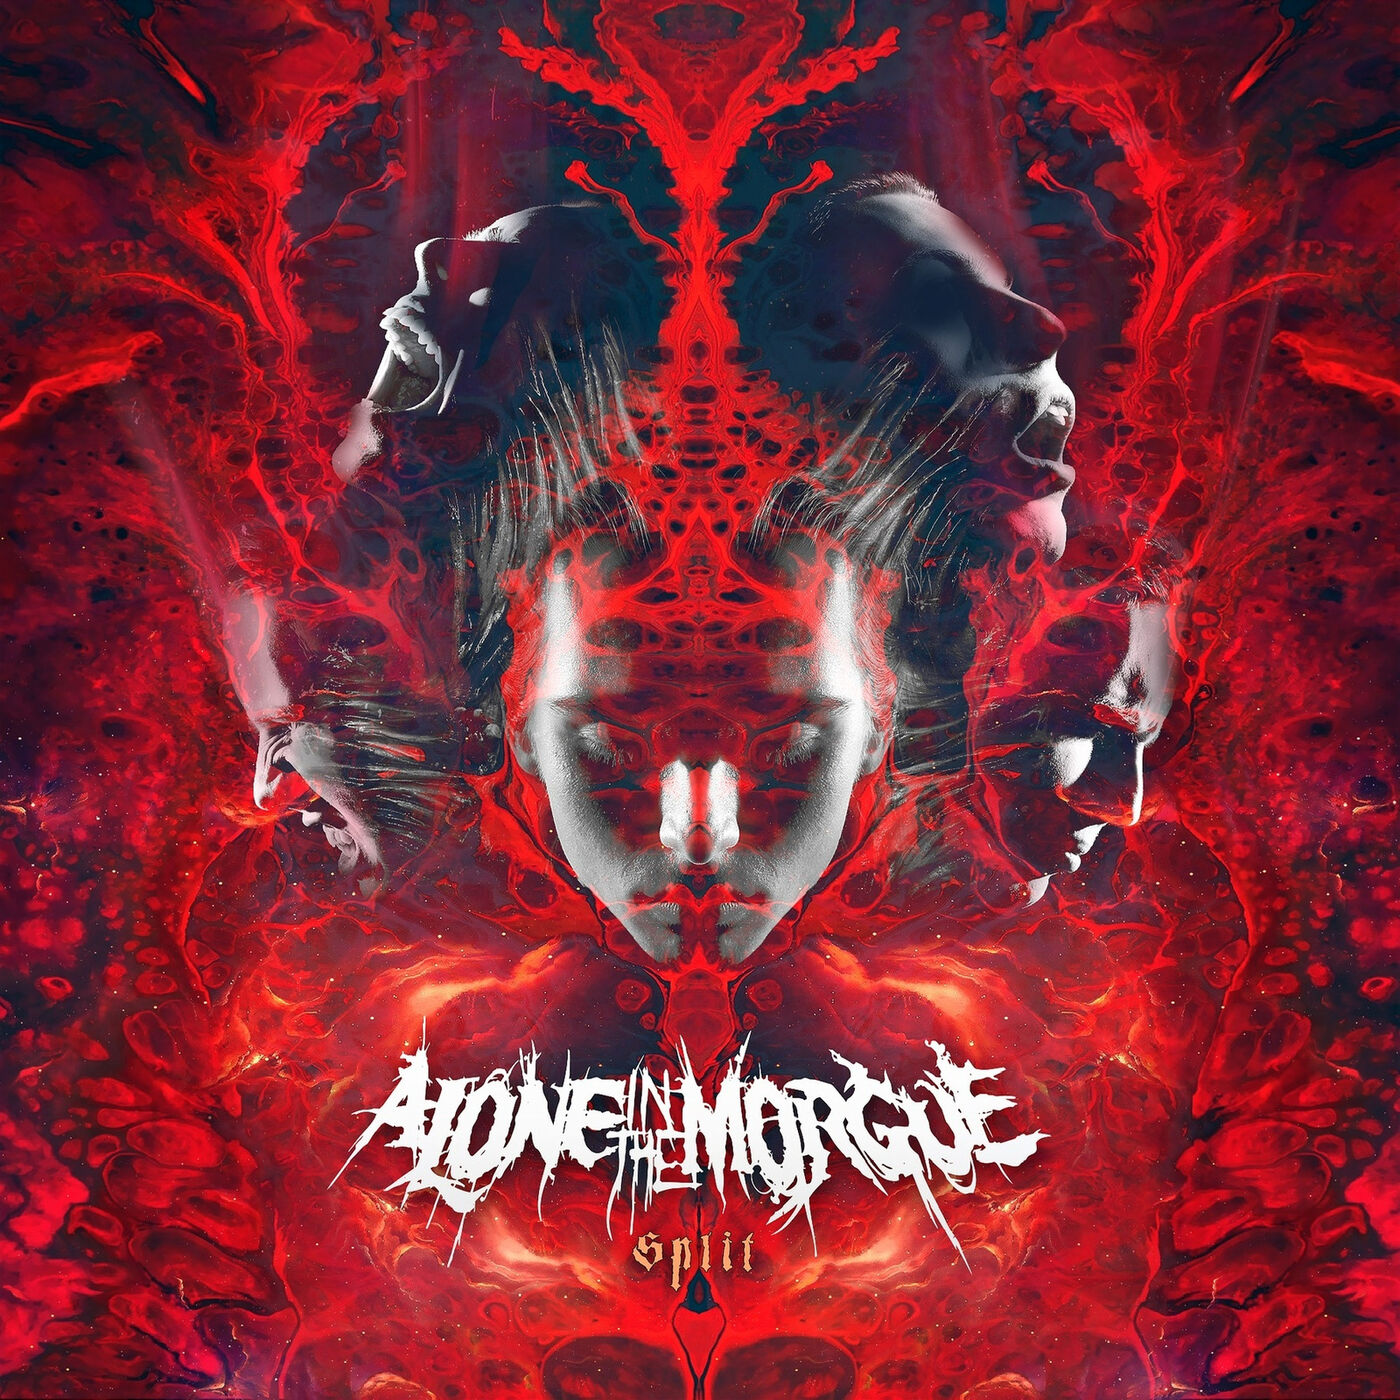 Alone In The Morgue - Split [EP] (2020)